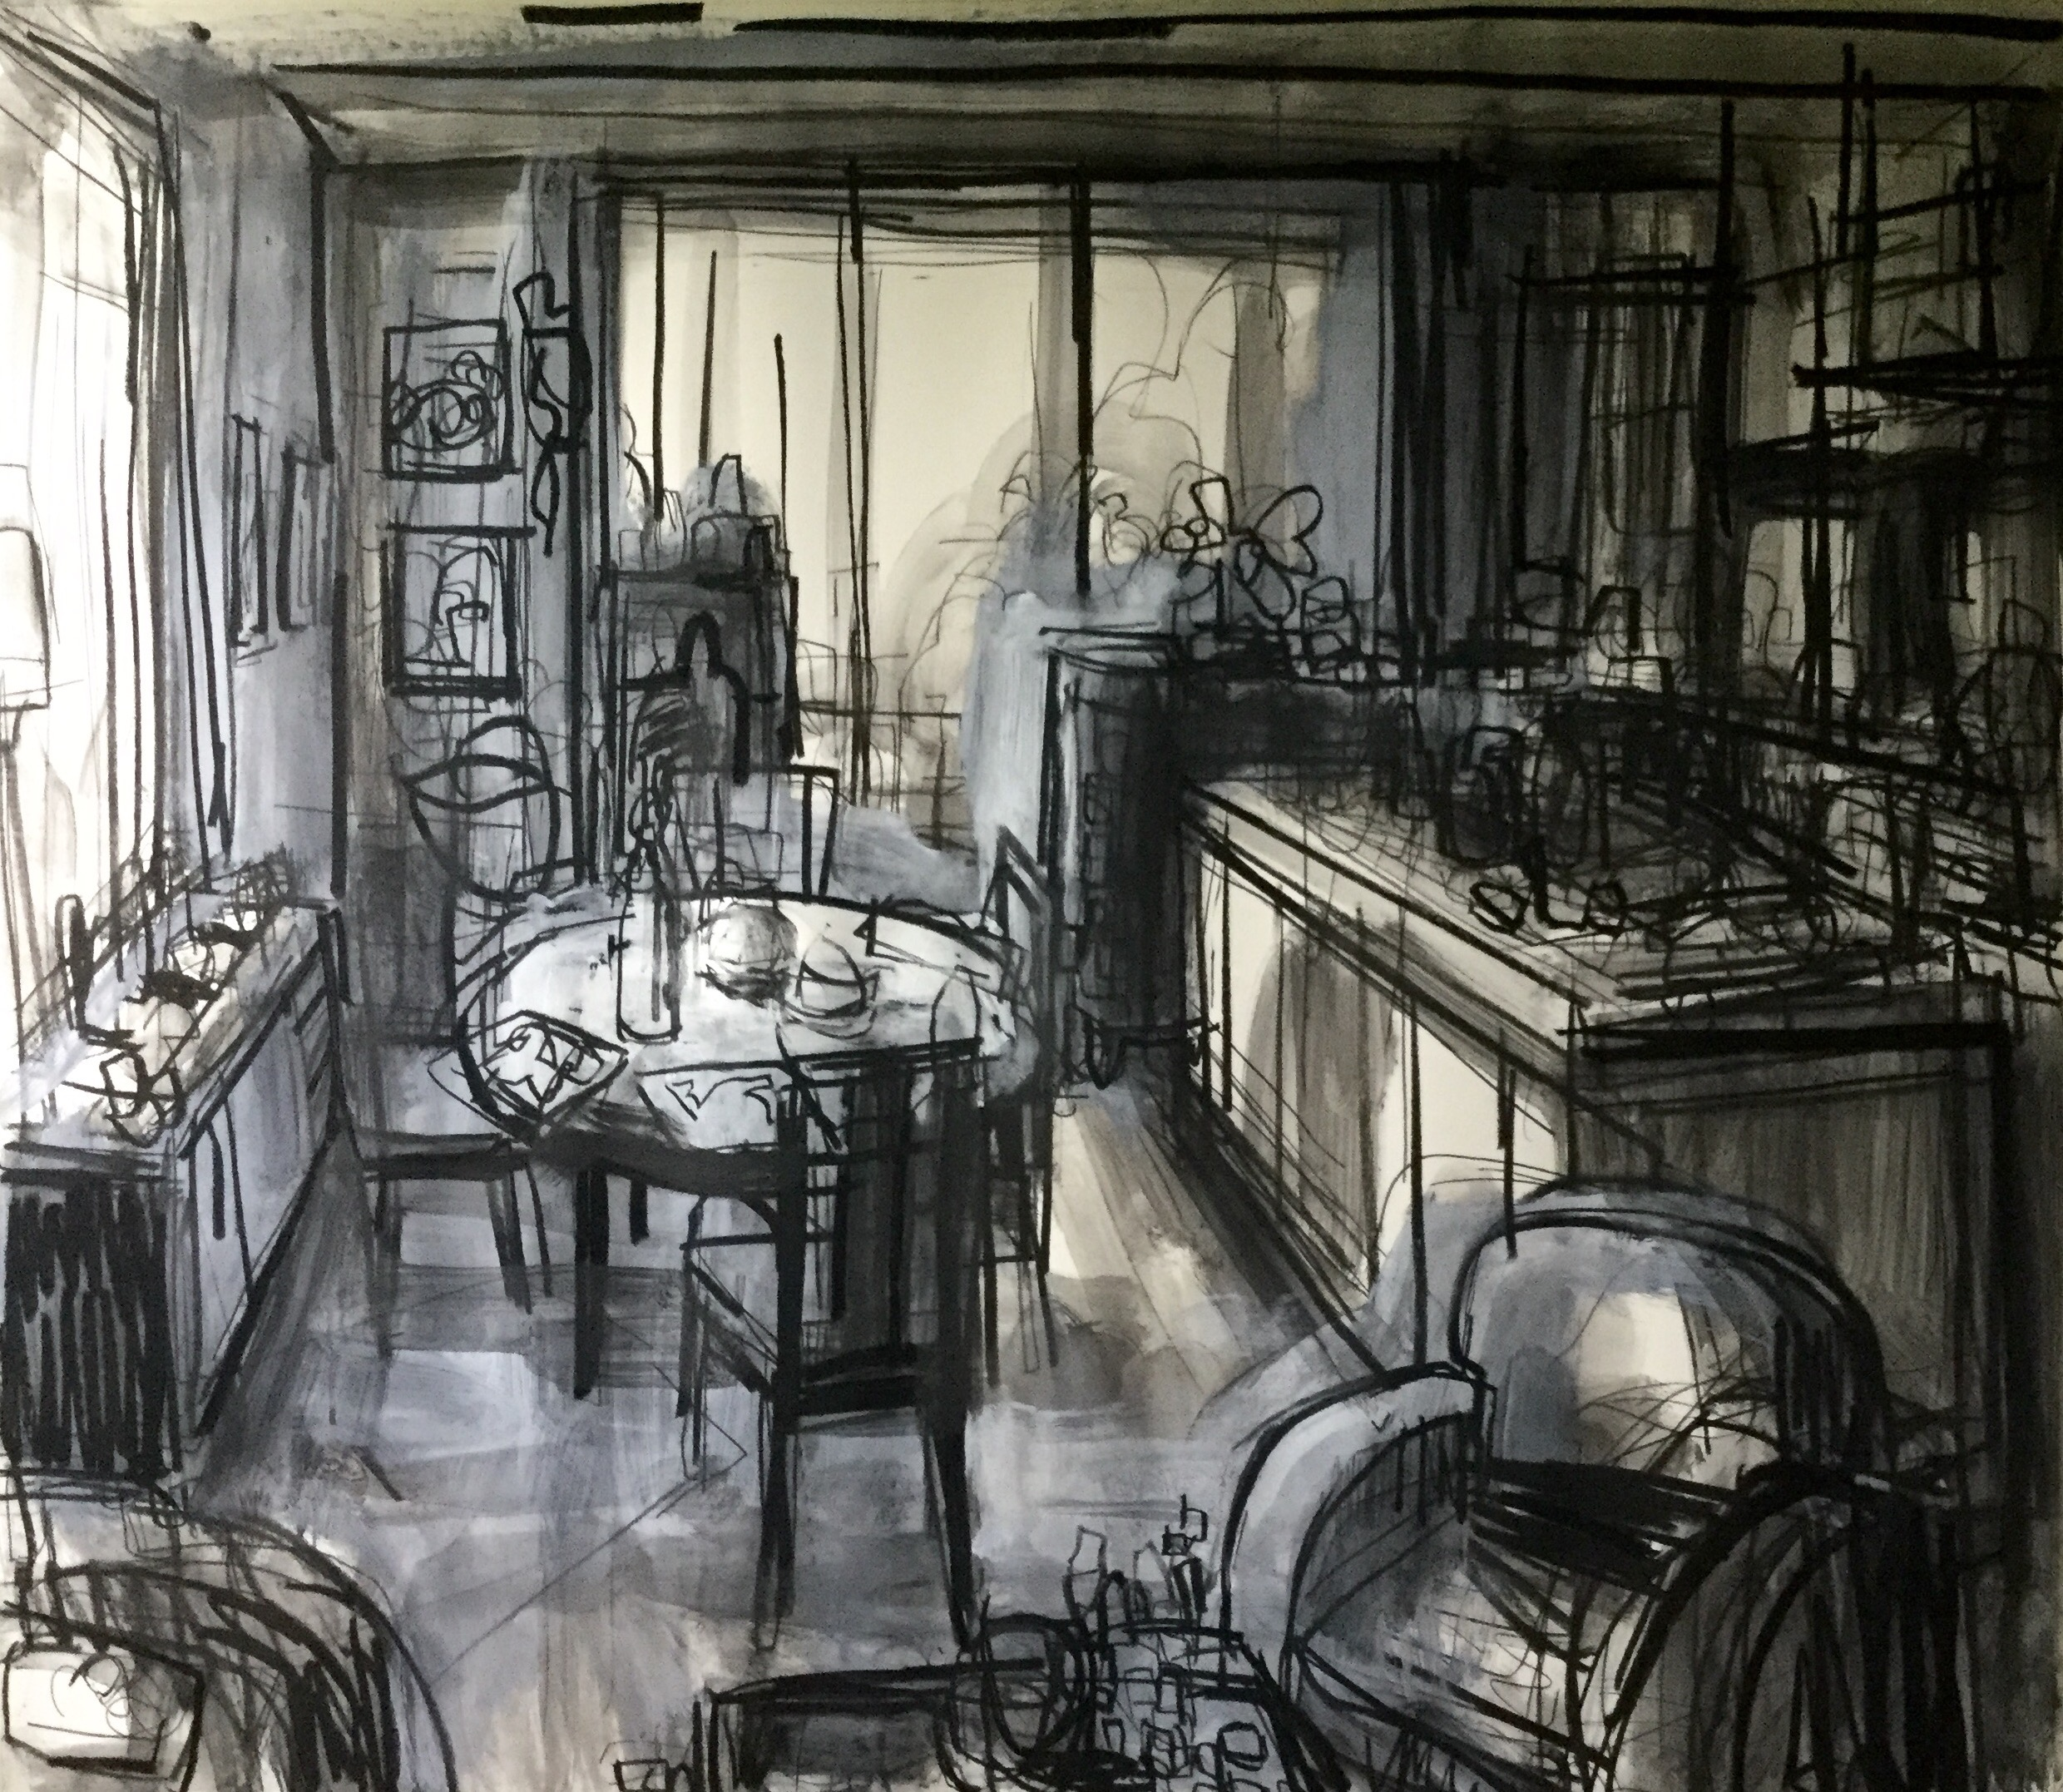 Kitchen Sink Realism Art: Talking With Painters